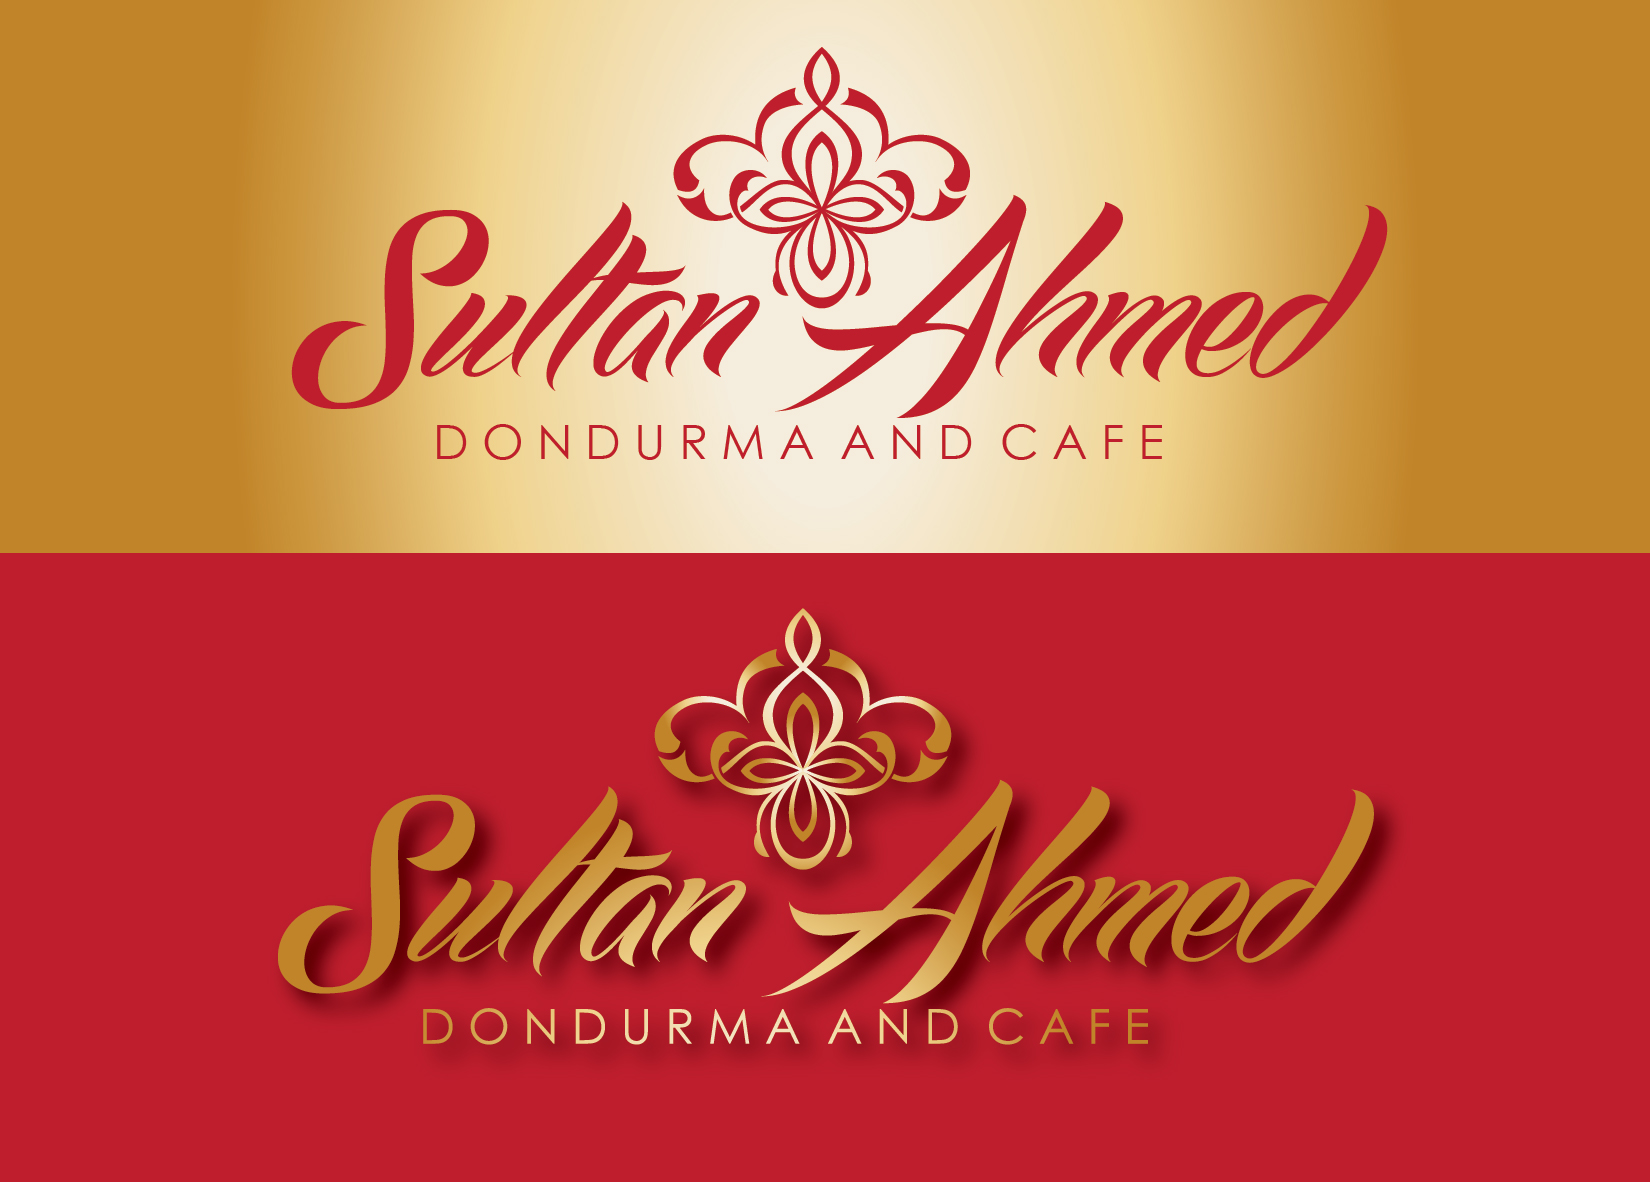 Logo Design by Milena Str - Entry No. 63 in the Logo Design Contest Unique Logo Design Wanted for Sultan Ahmed Dondurma and Cafe.